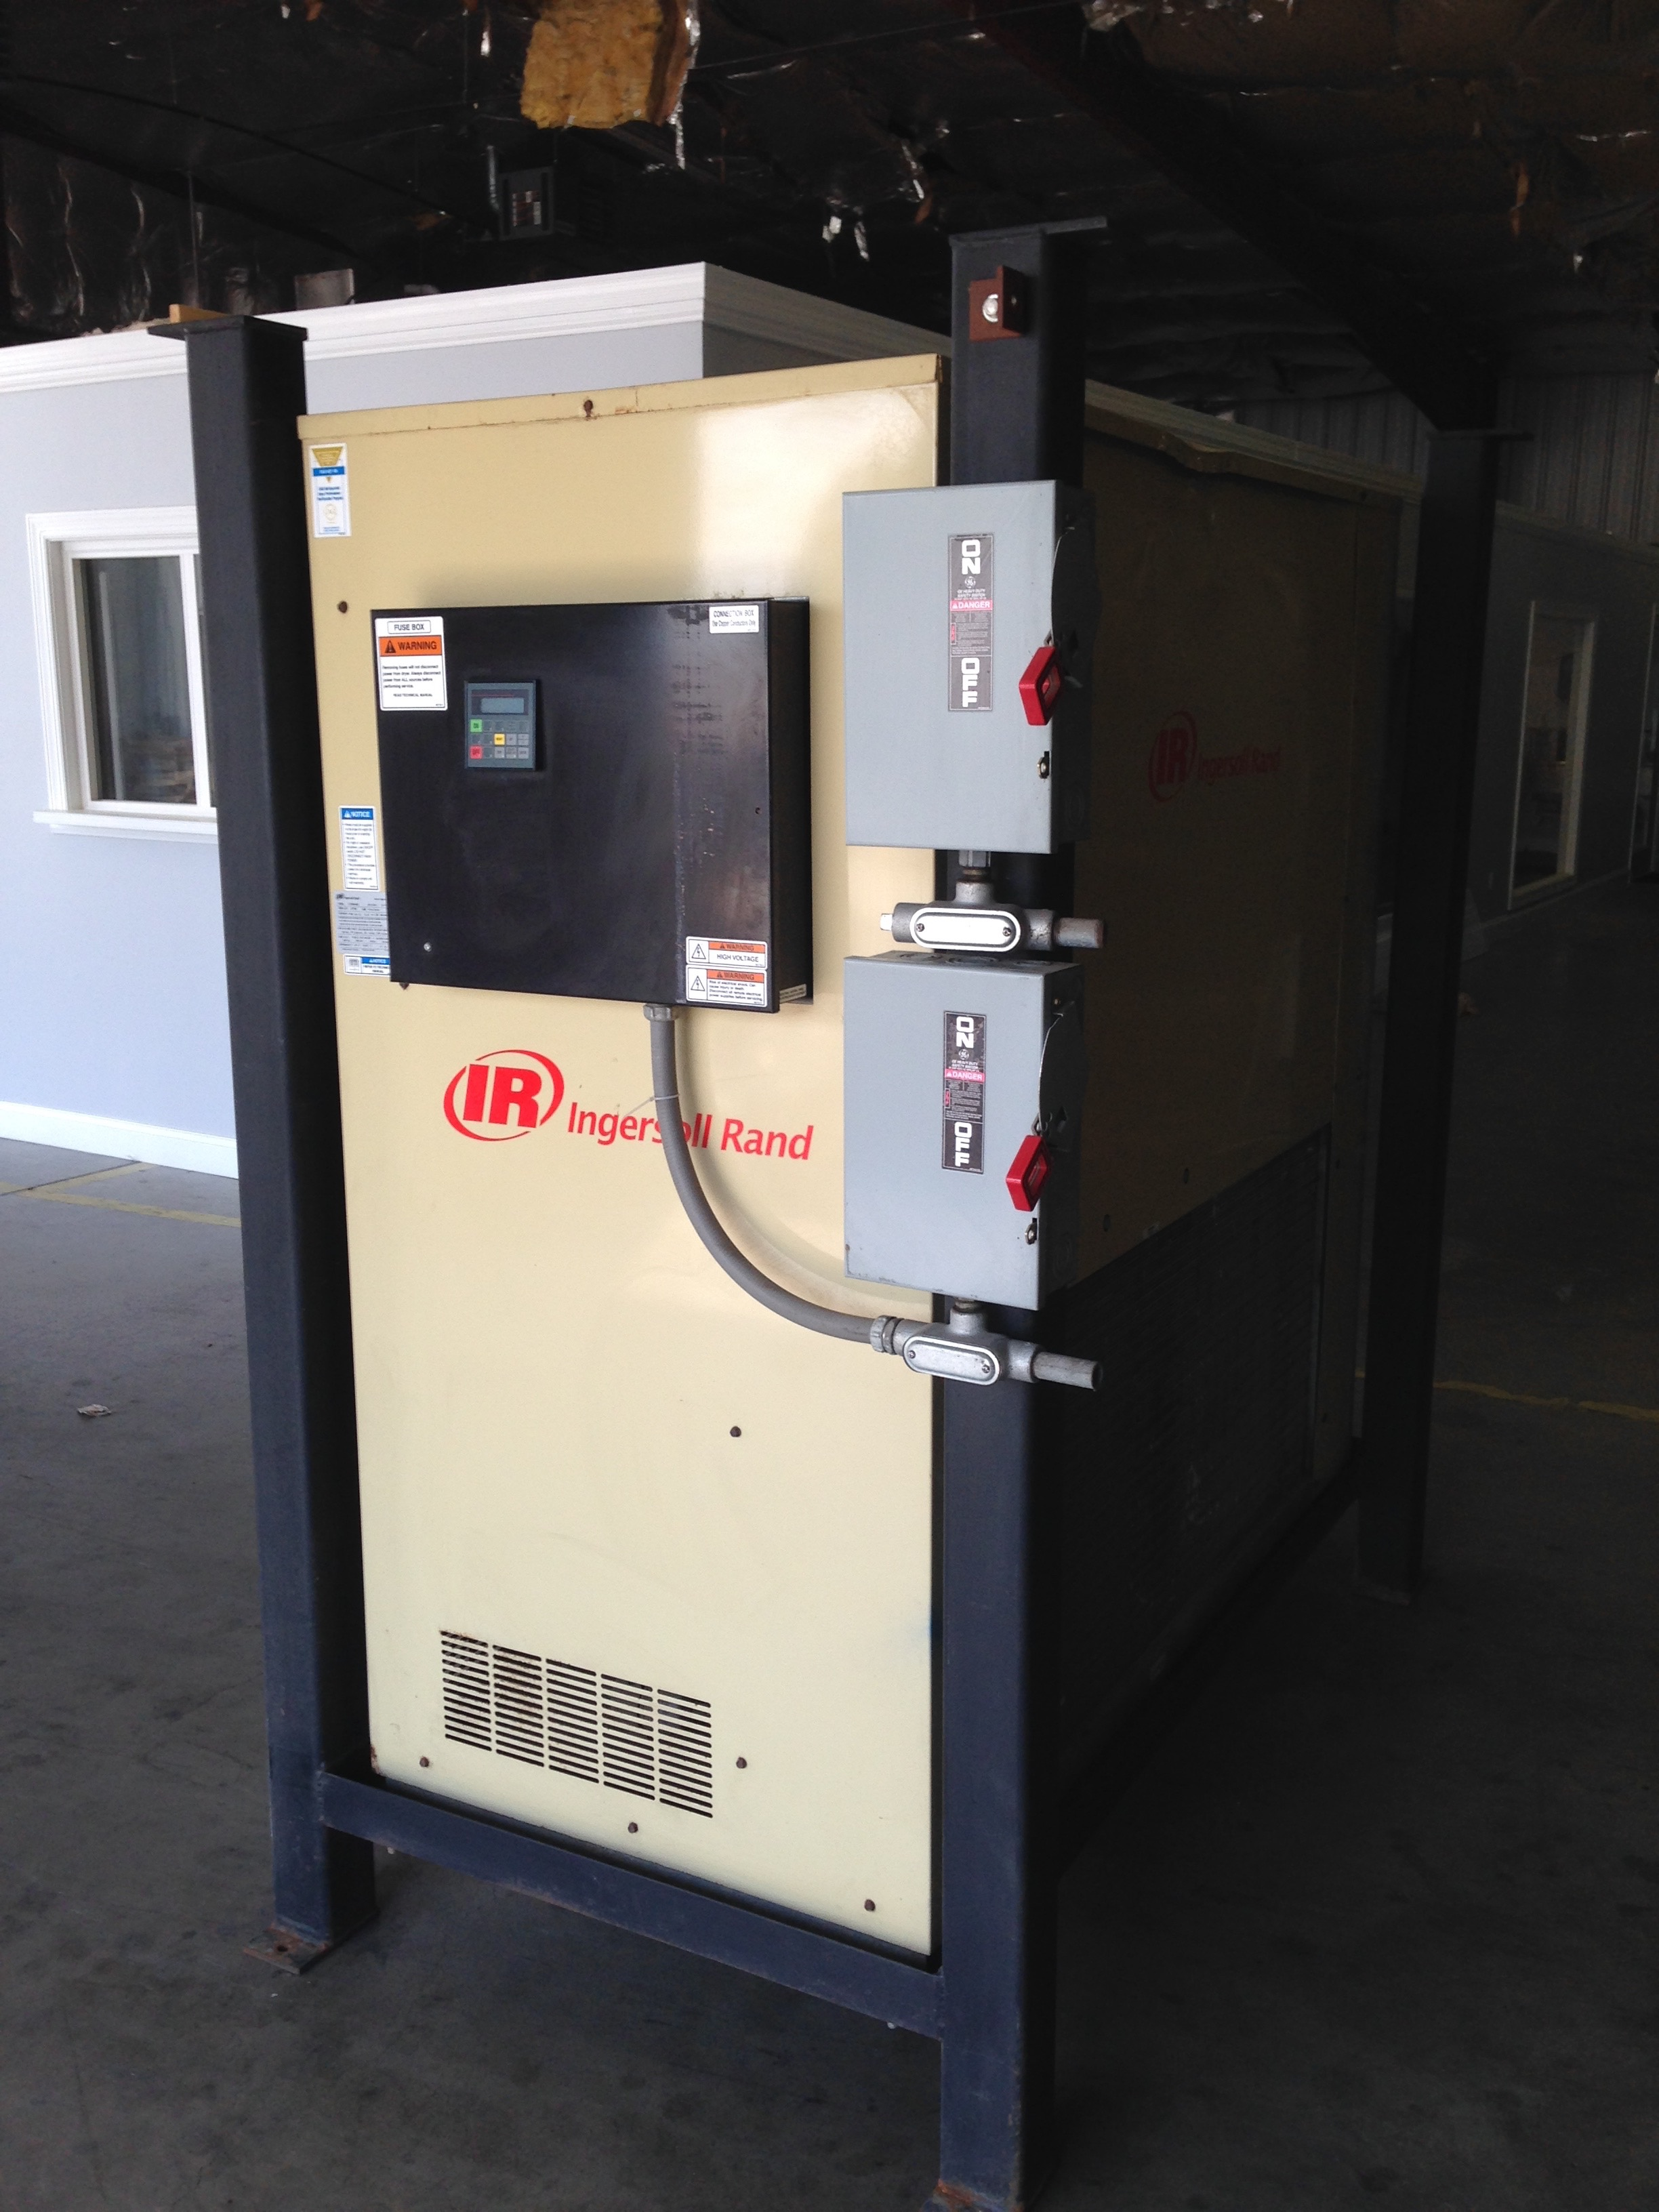 Ingersol Rand 1700 SCFM Air Dryer